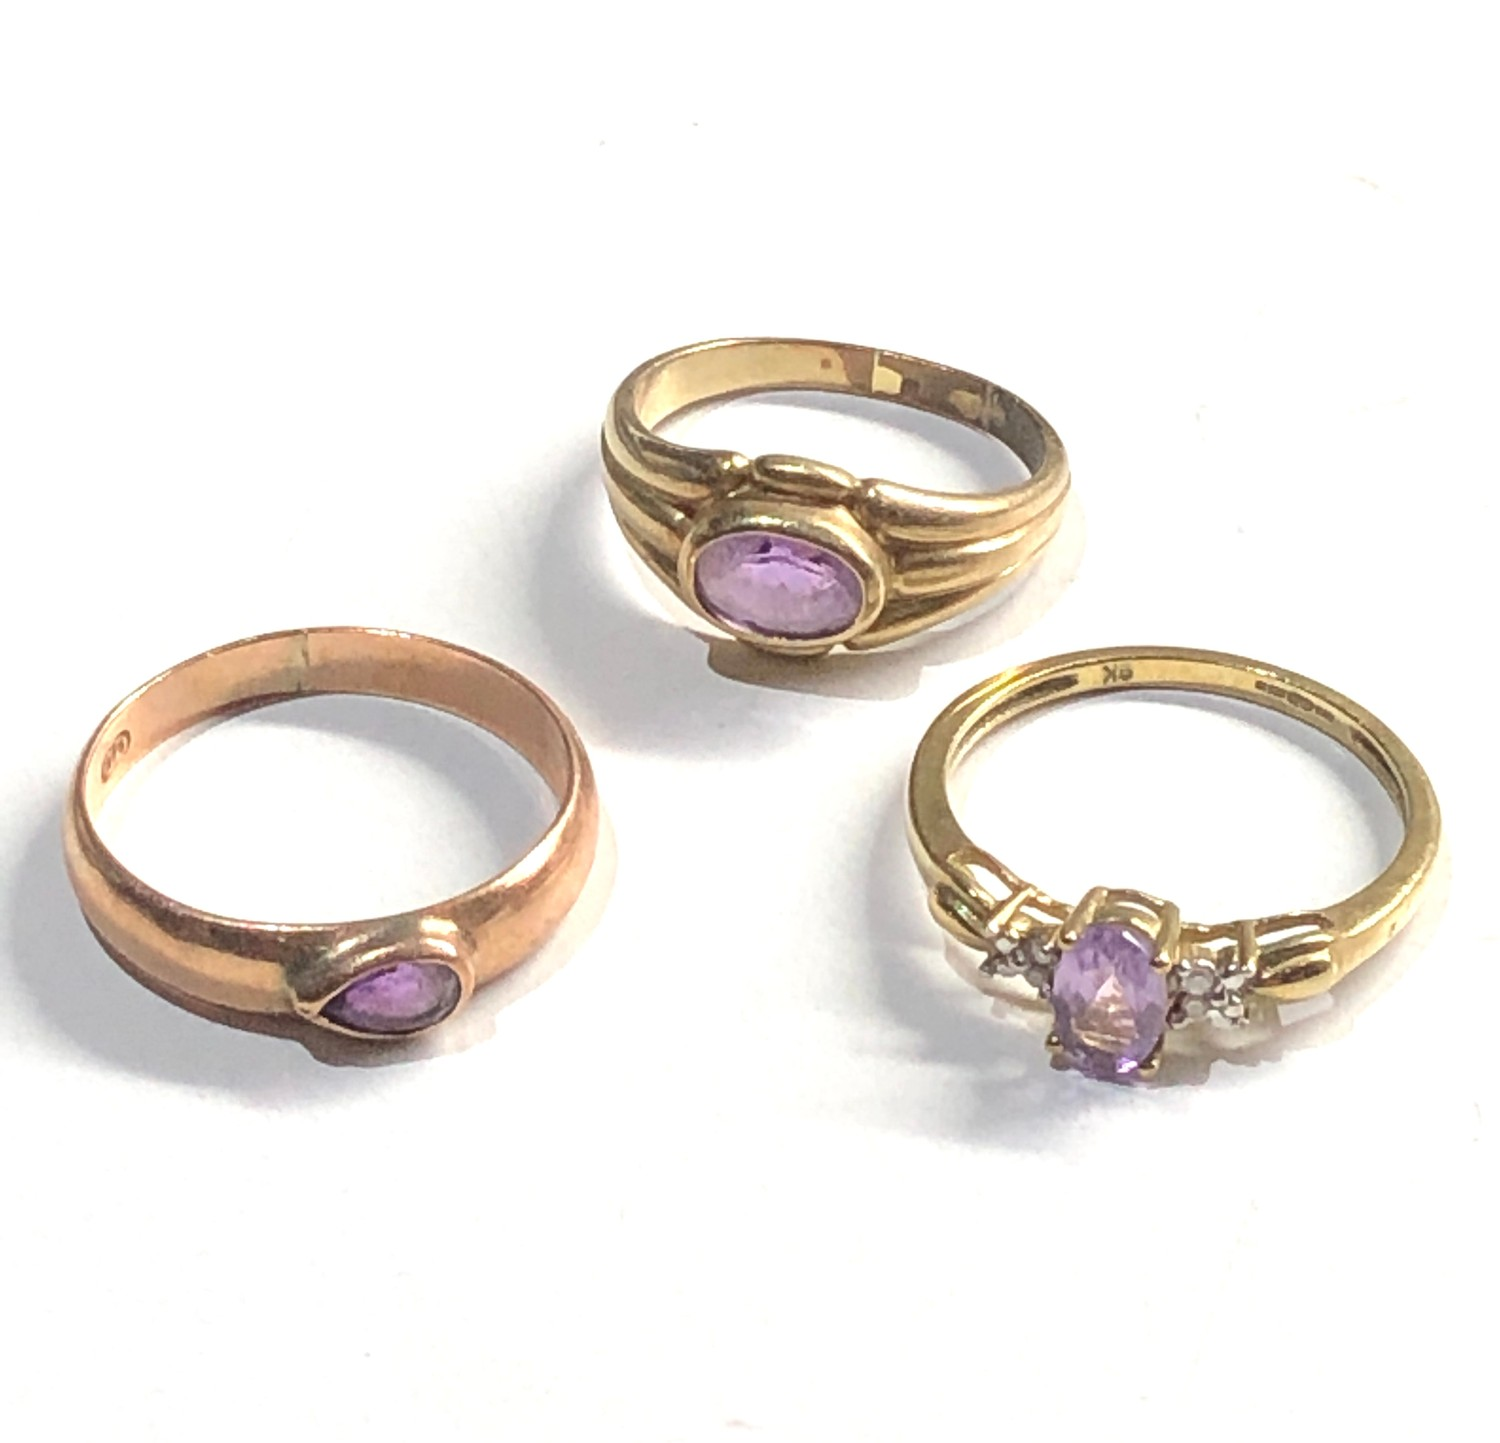 3 x 9ct Gold rings inc. amethyst, solitaire, diamond detail 5.4g